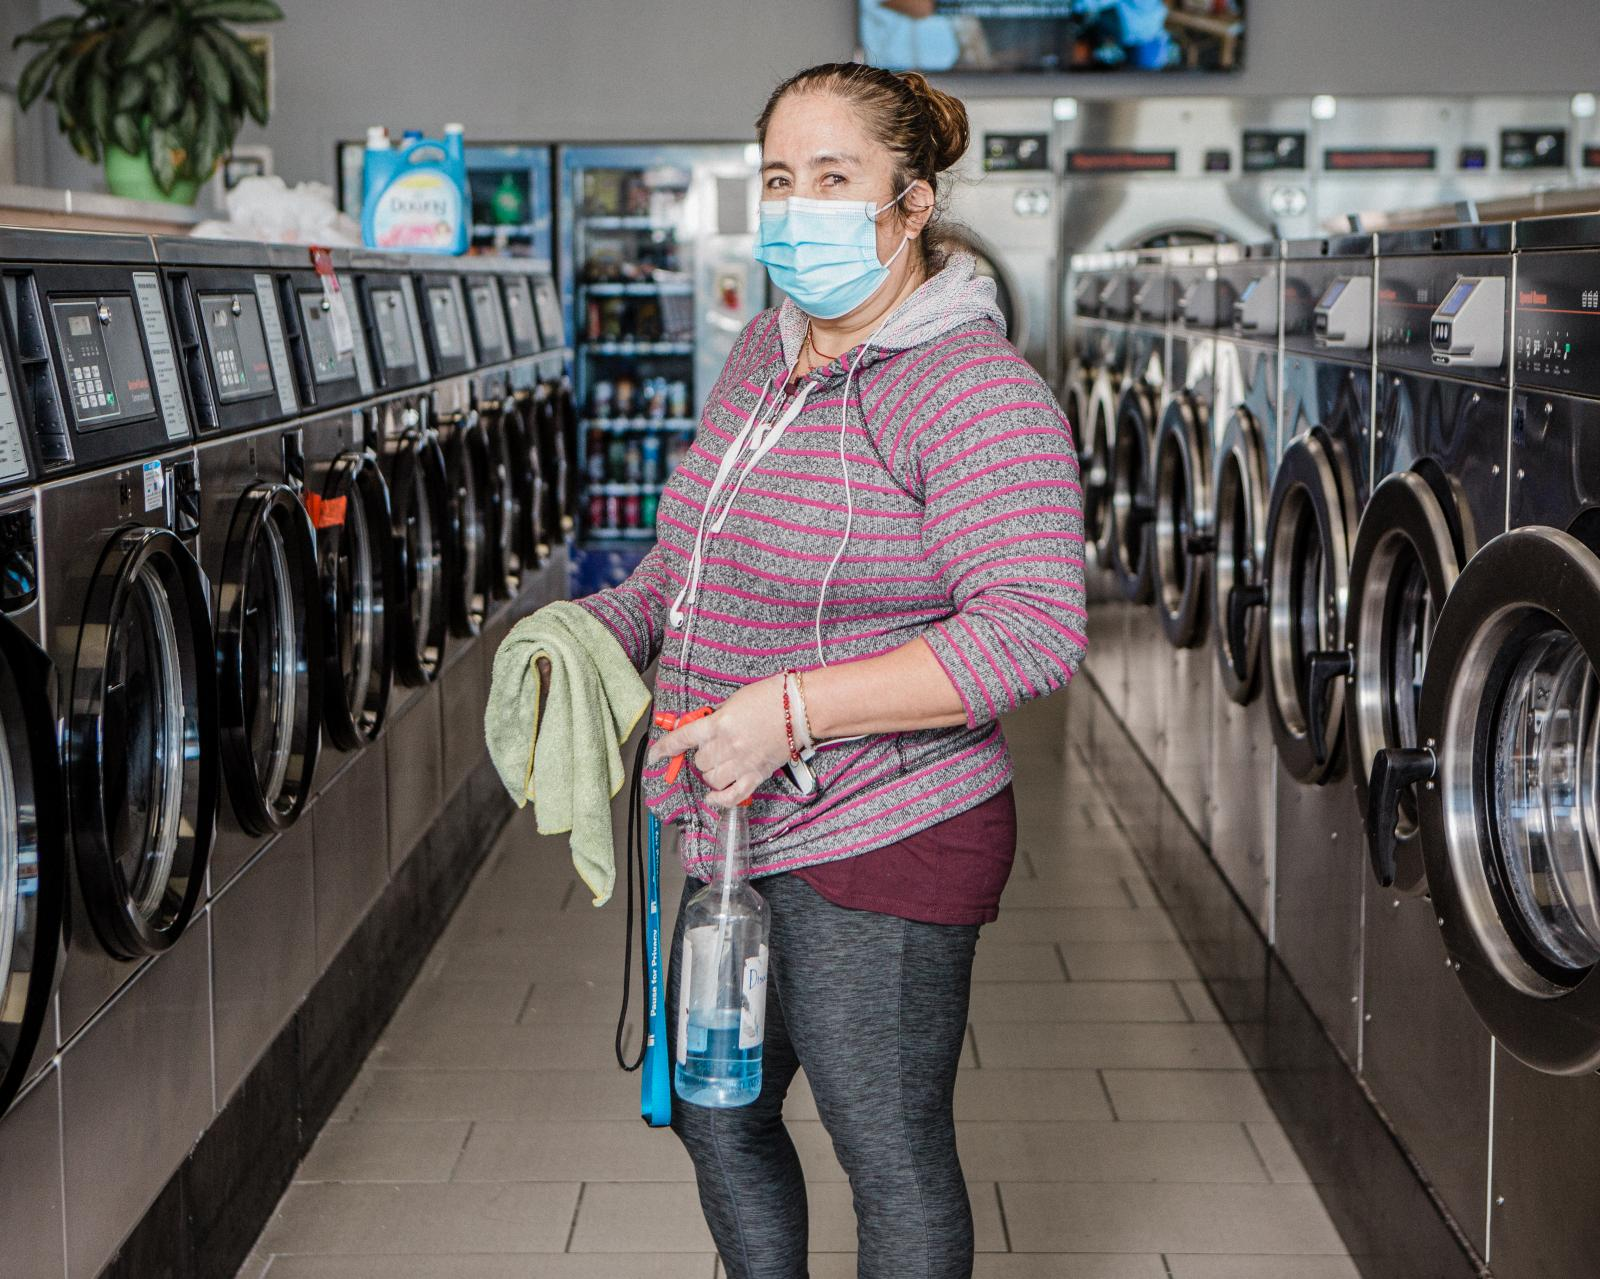 Yolanda Compass Palacio stands for a portrait in the laundry mat where she works three days a week, She has another job at night as a custodian at an office building. Thursday, December 17, 2020